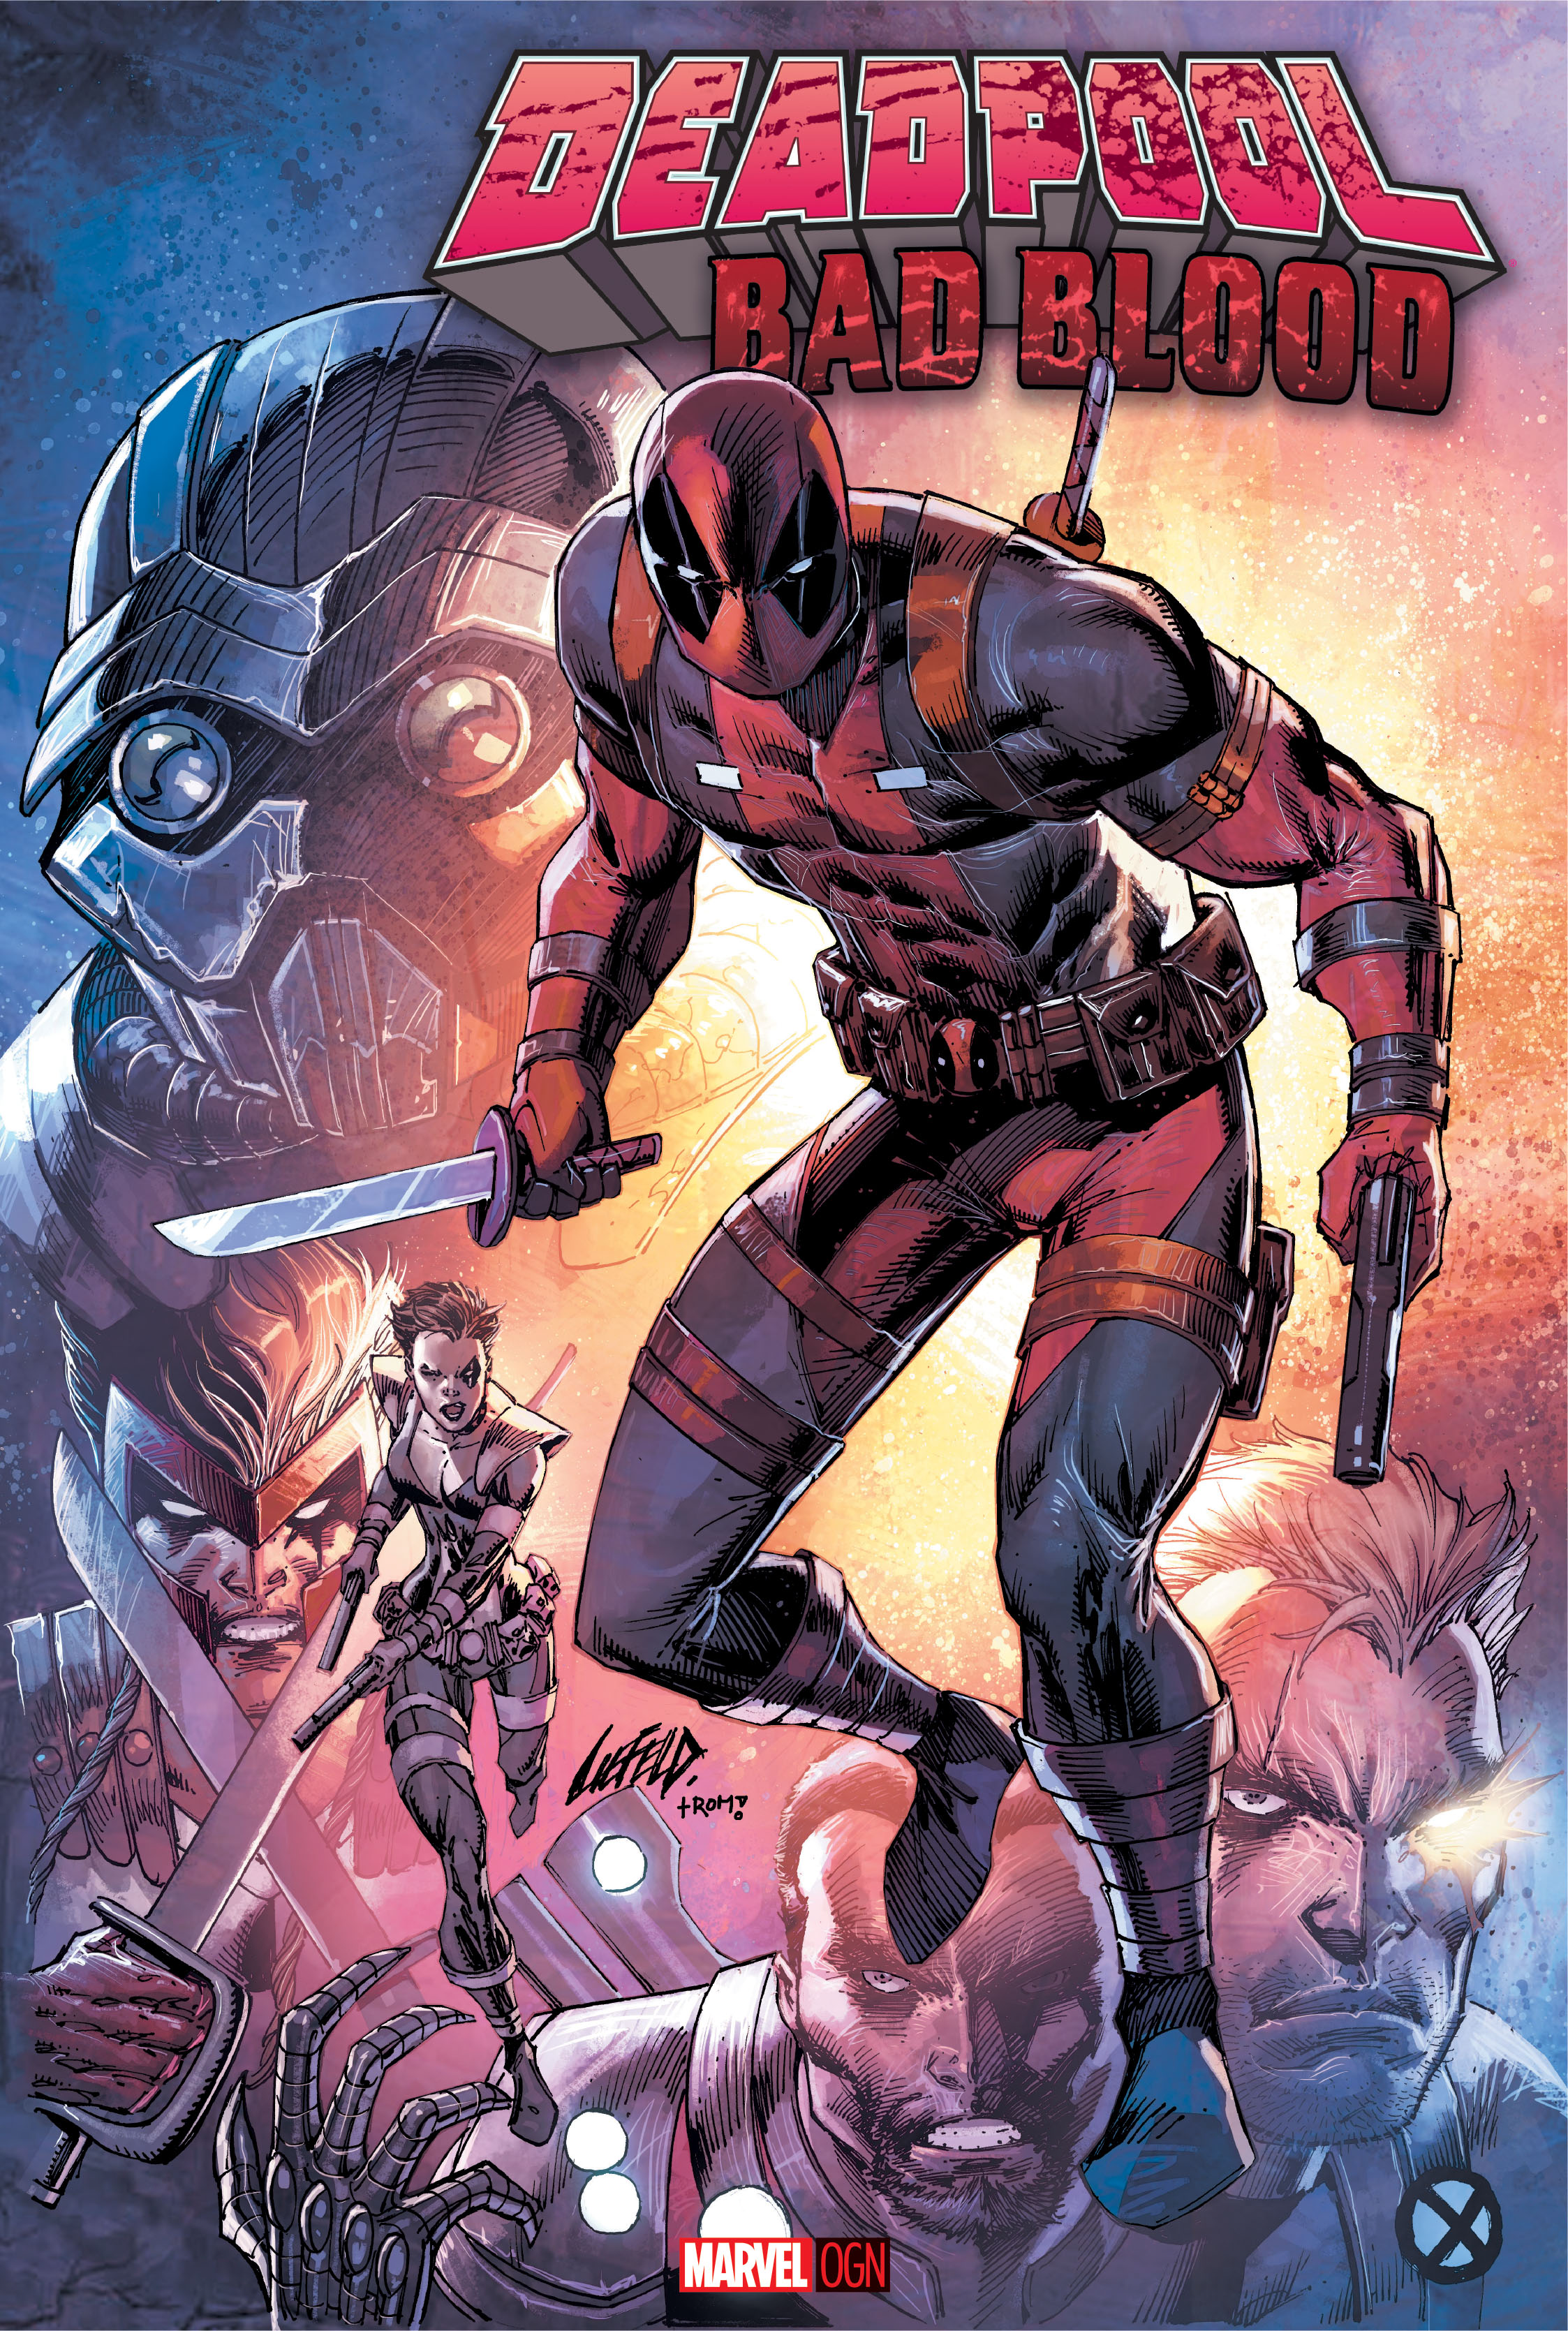 Deadpool: Bad Blood Review